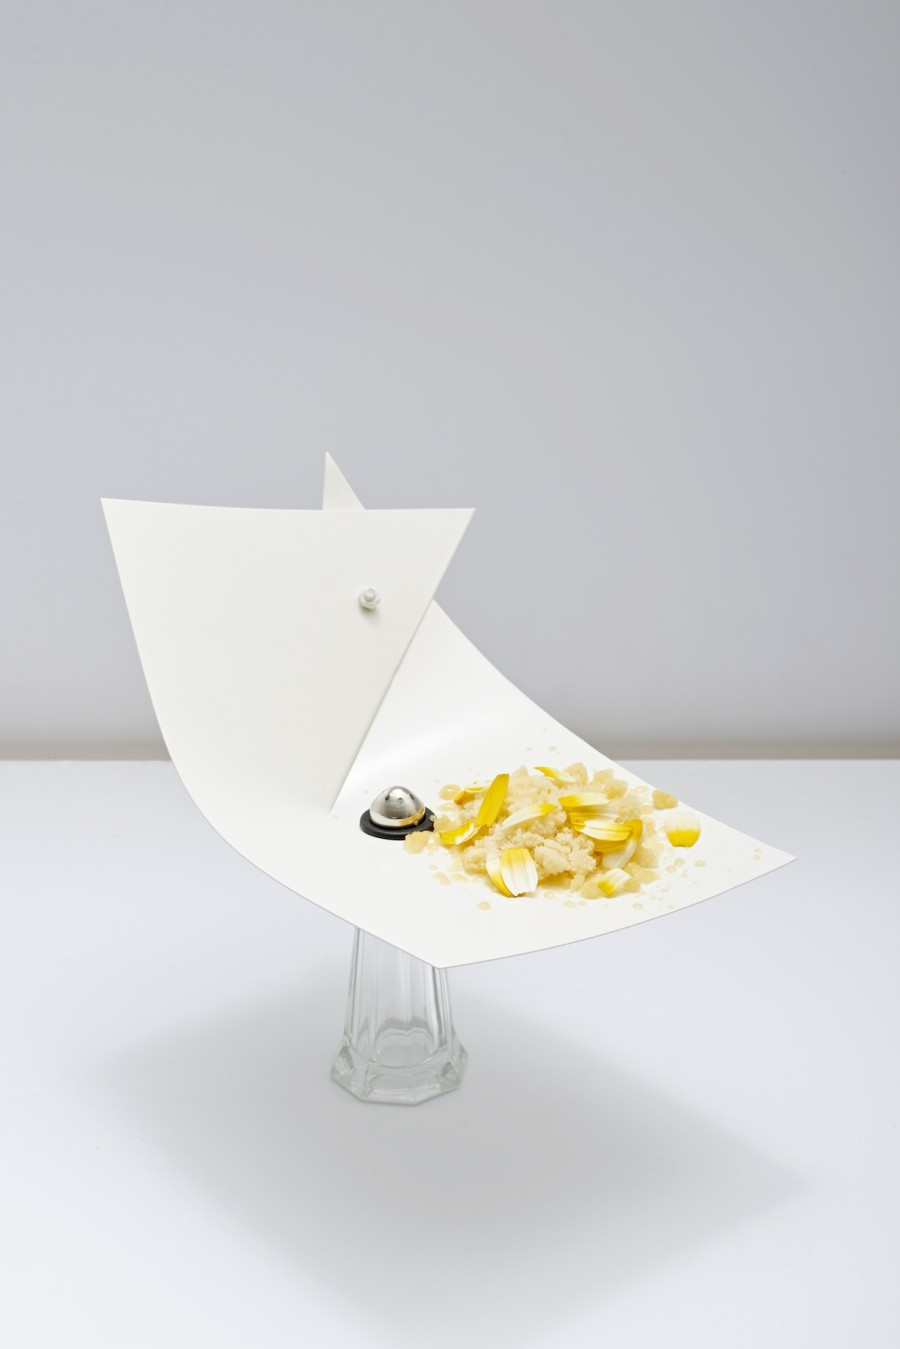 'Fruit' from Daniel Burns (Luksus) served on a 'White Snip' plate by Kathleen Reilly.